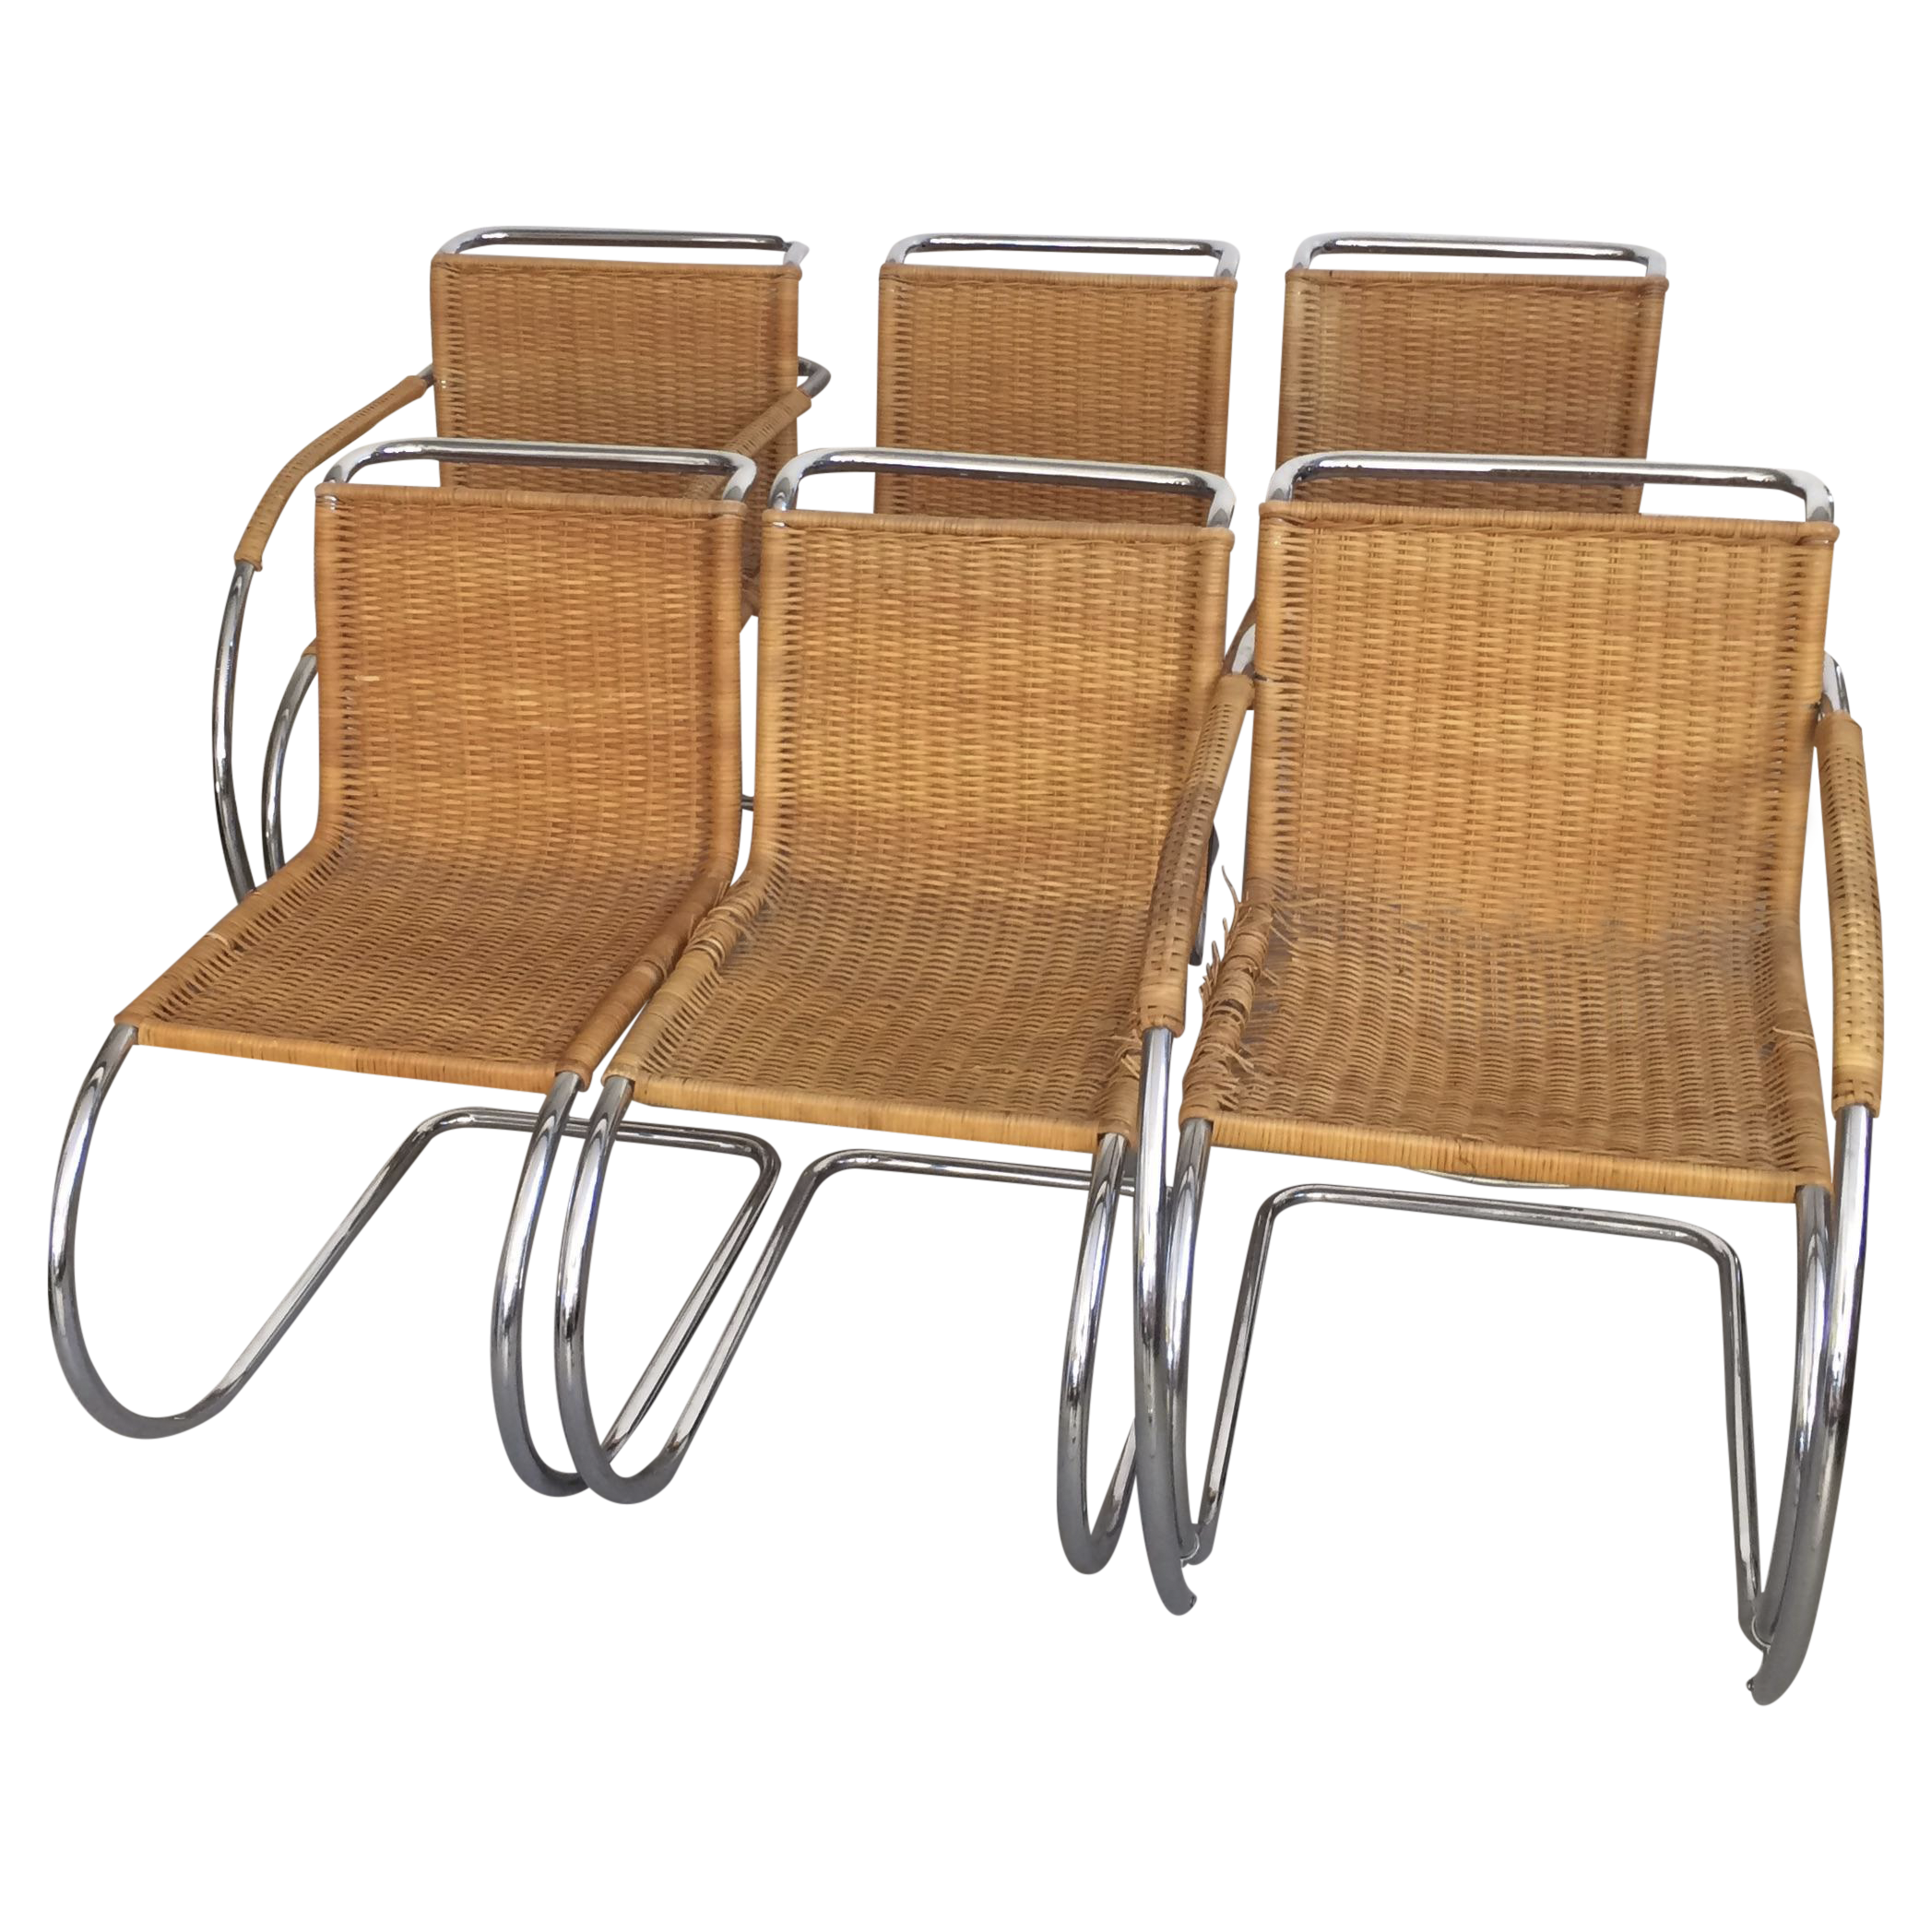 mies van der rohe mr chrome chairs set of 6 chairish. Black Bedroom Furniture Sets. Home Design Ideas